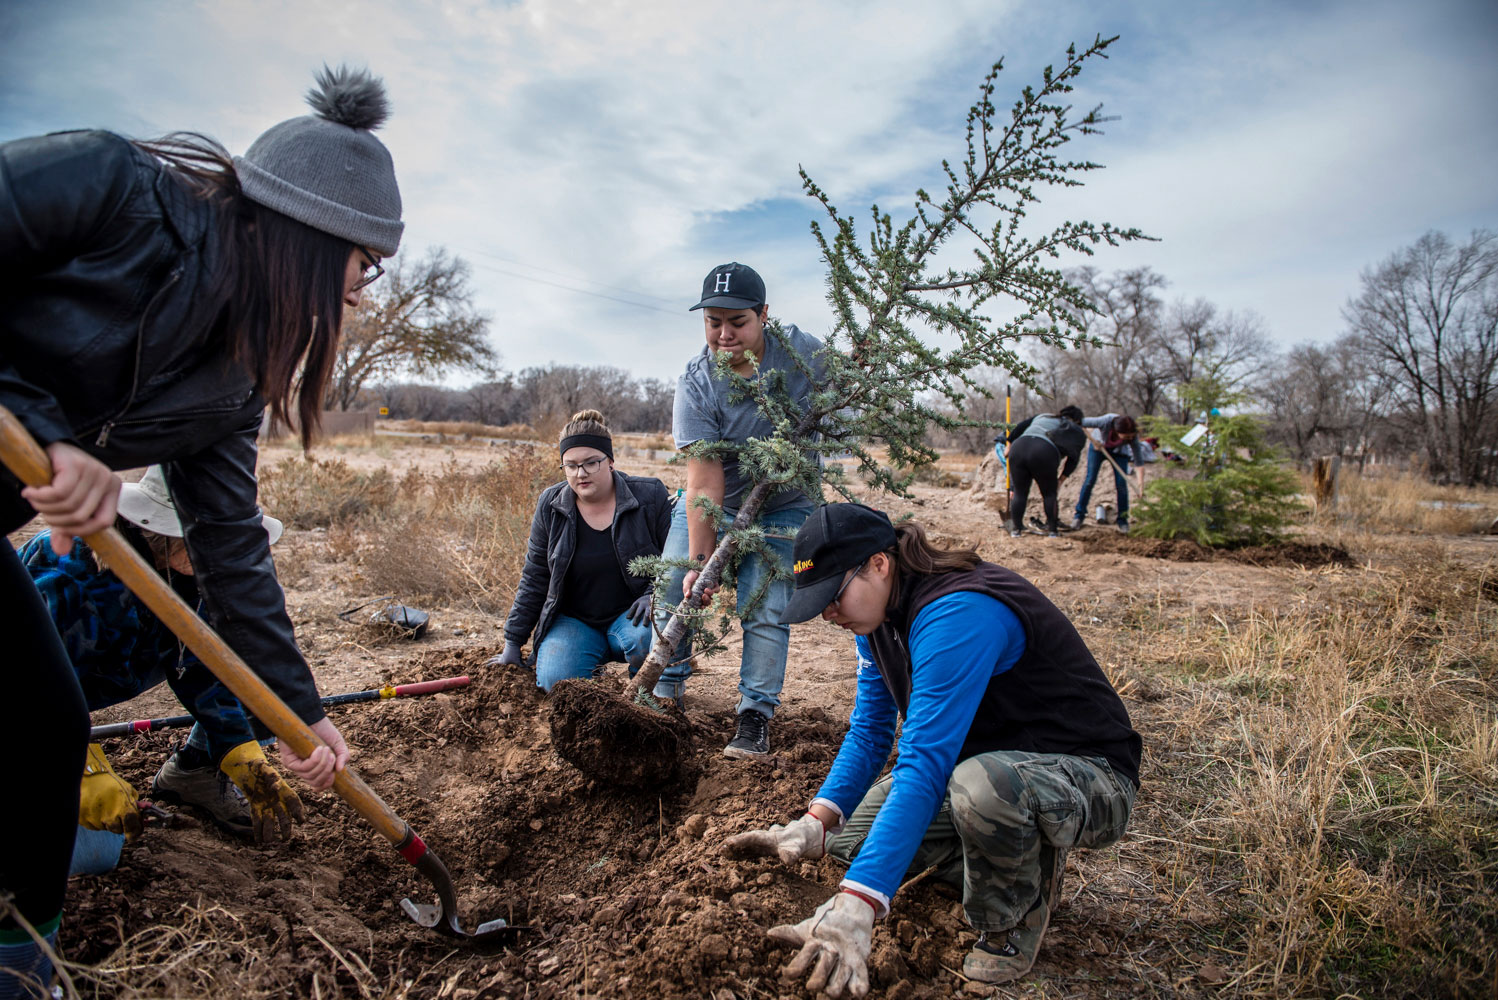 Volunteers planting a tree in the ground.